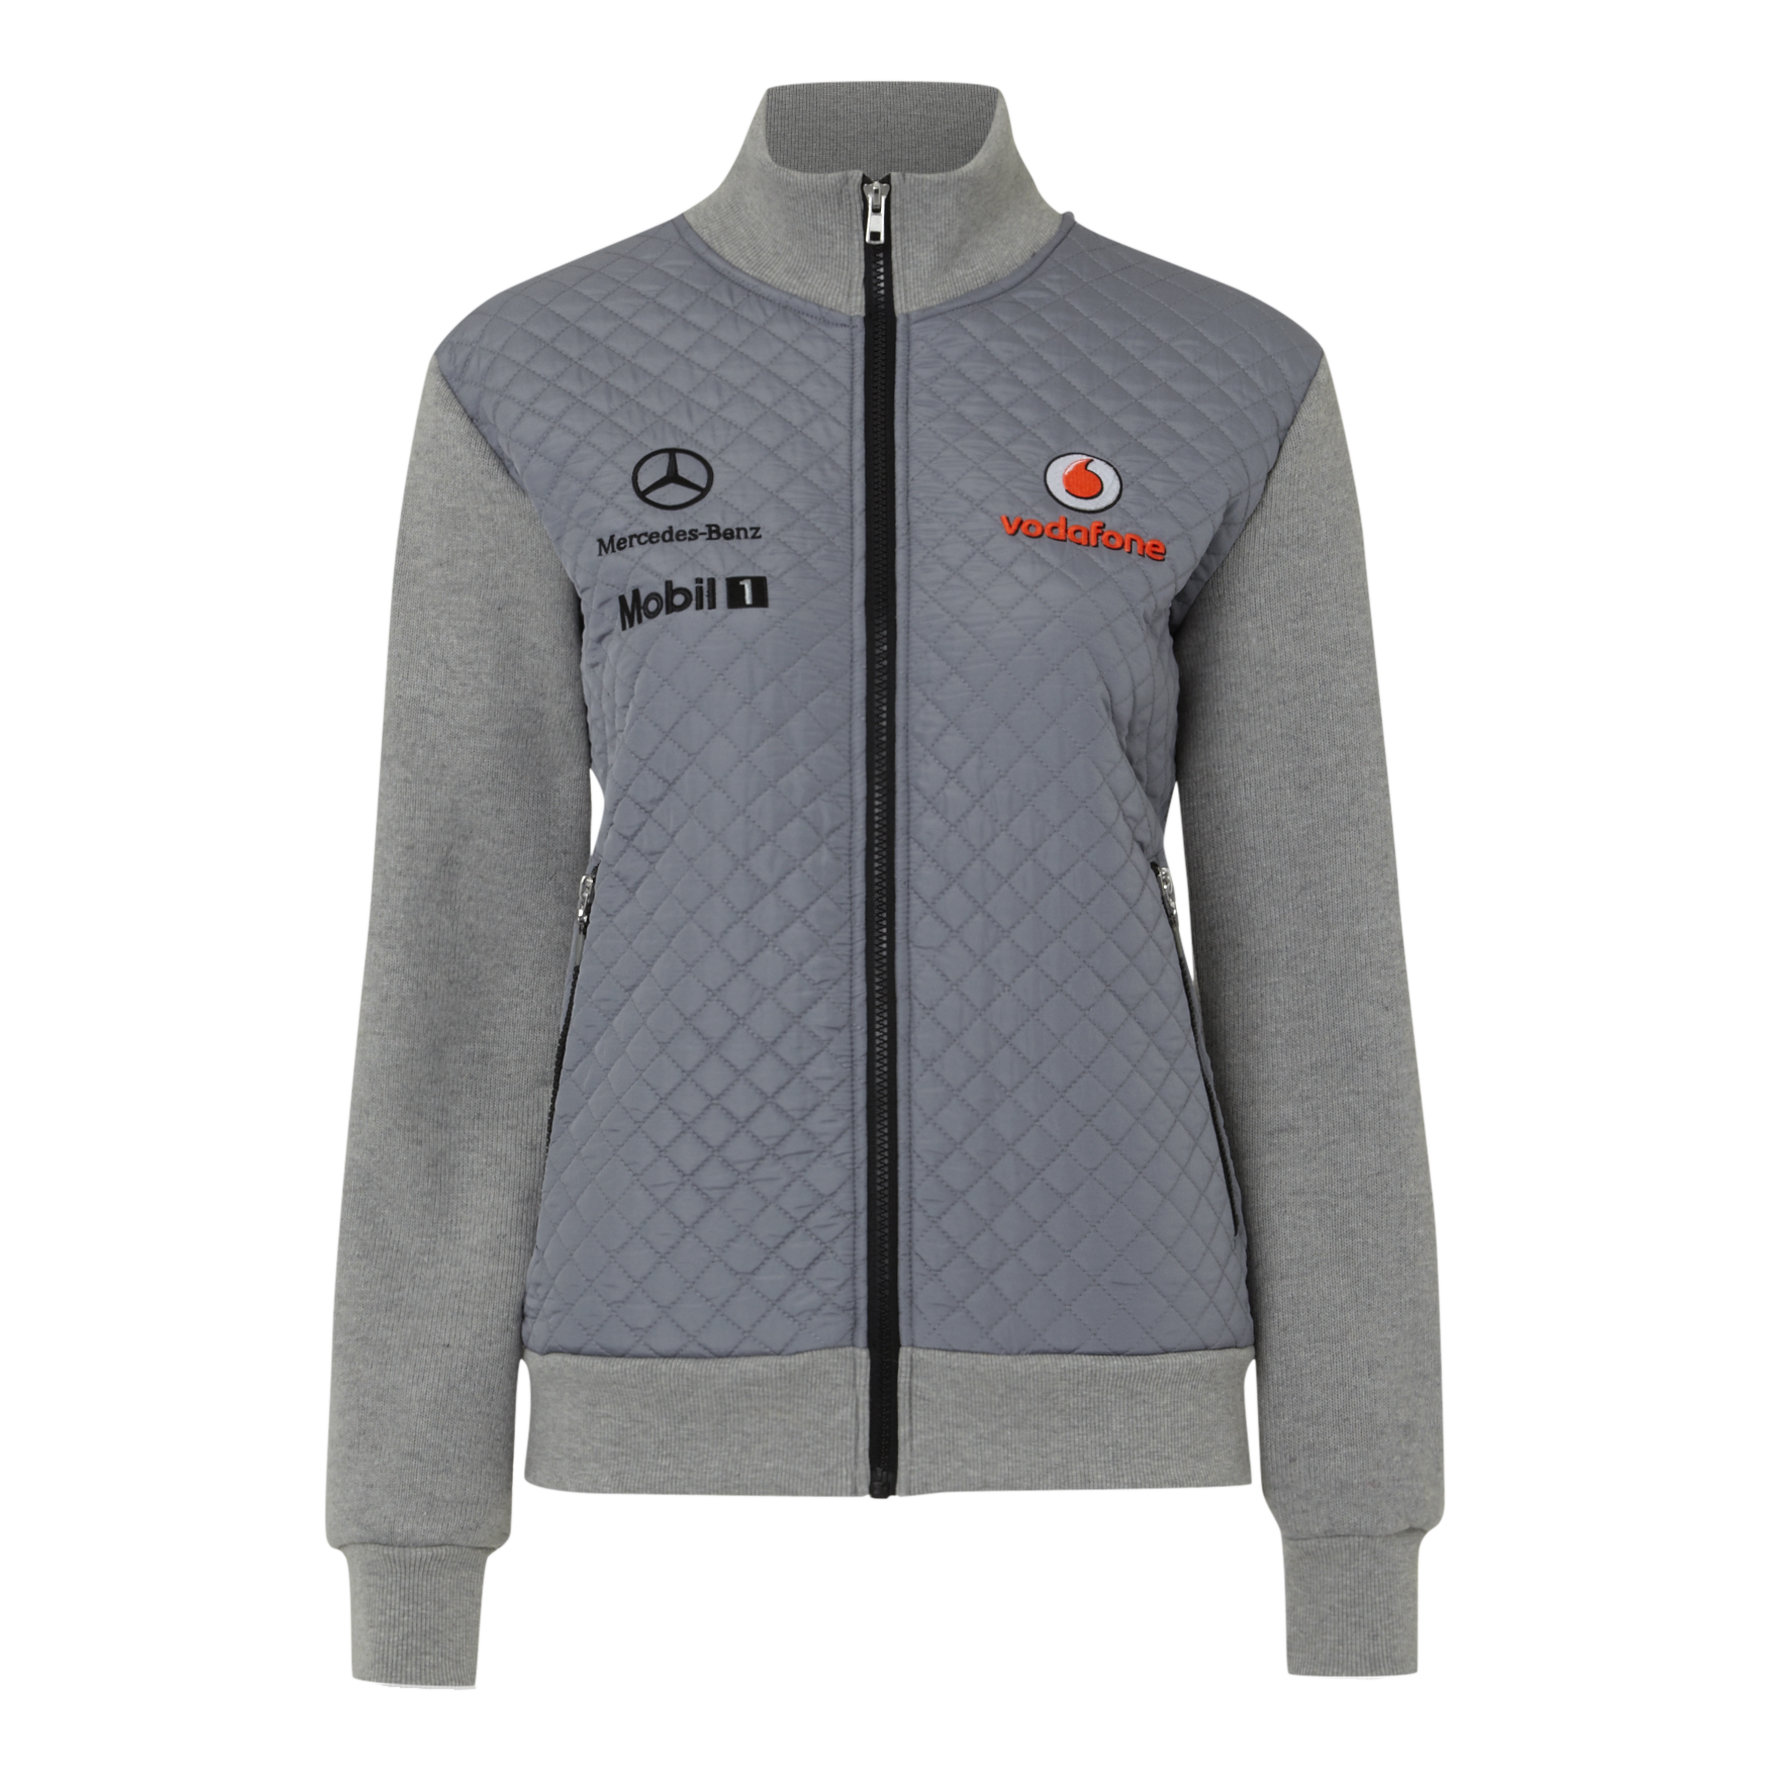 Vodafone McLaren Mercedes 2013  Team Sweatshirt - Womens